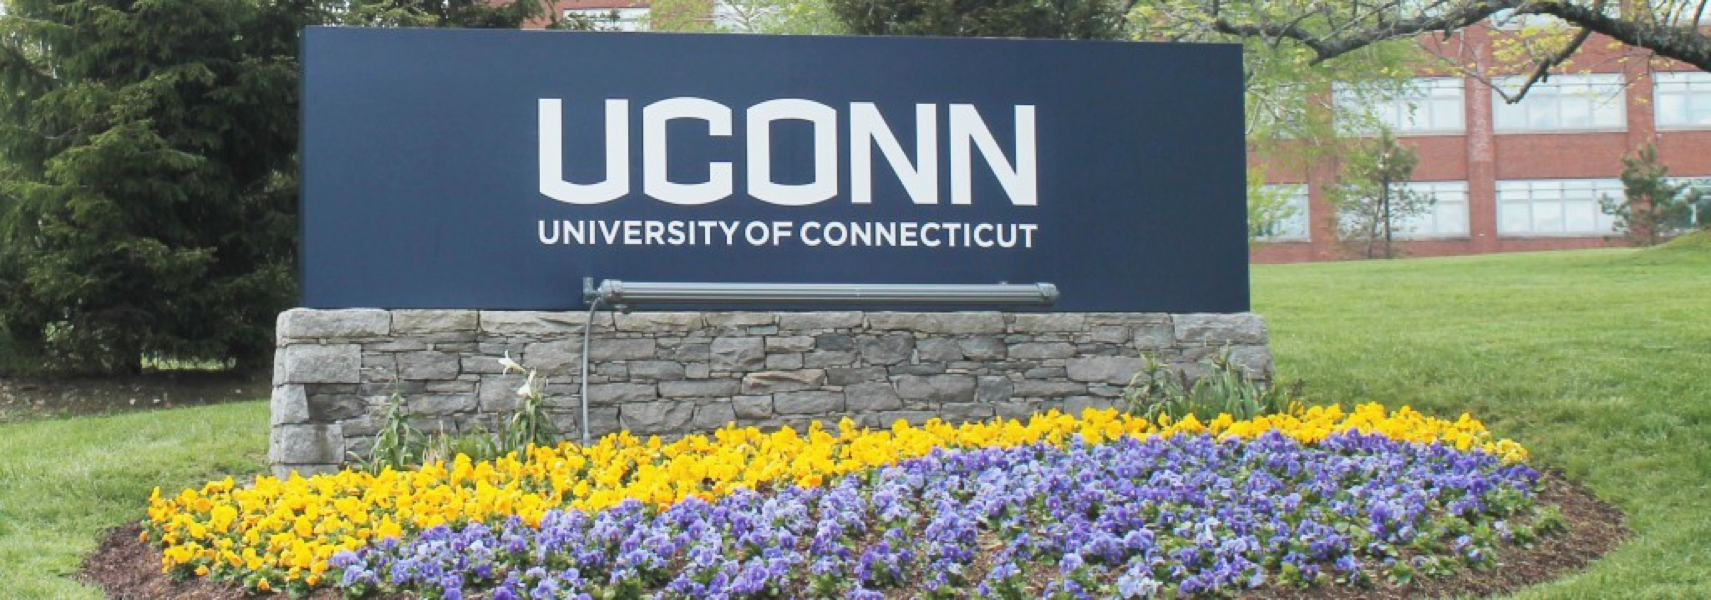 uconn essay for admission Uconn requirements for admission  both the sat and act have a writing section that includes an essay uconn requires you to take the sat/act writing section they .